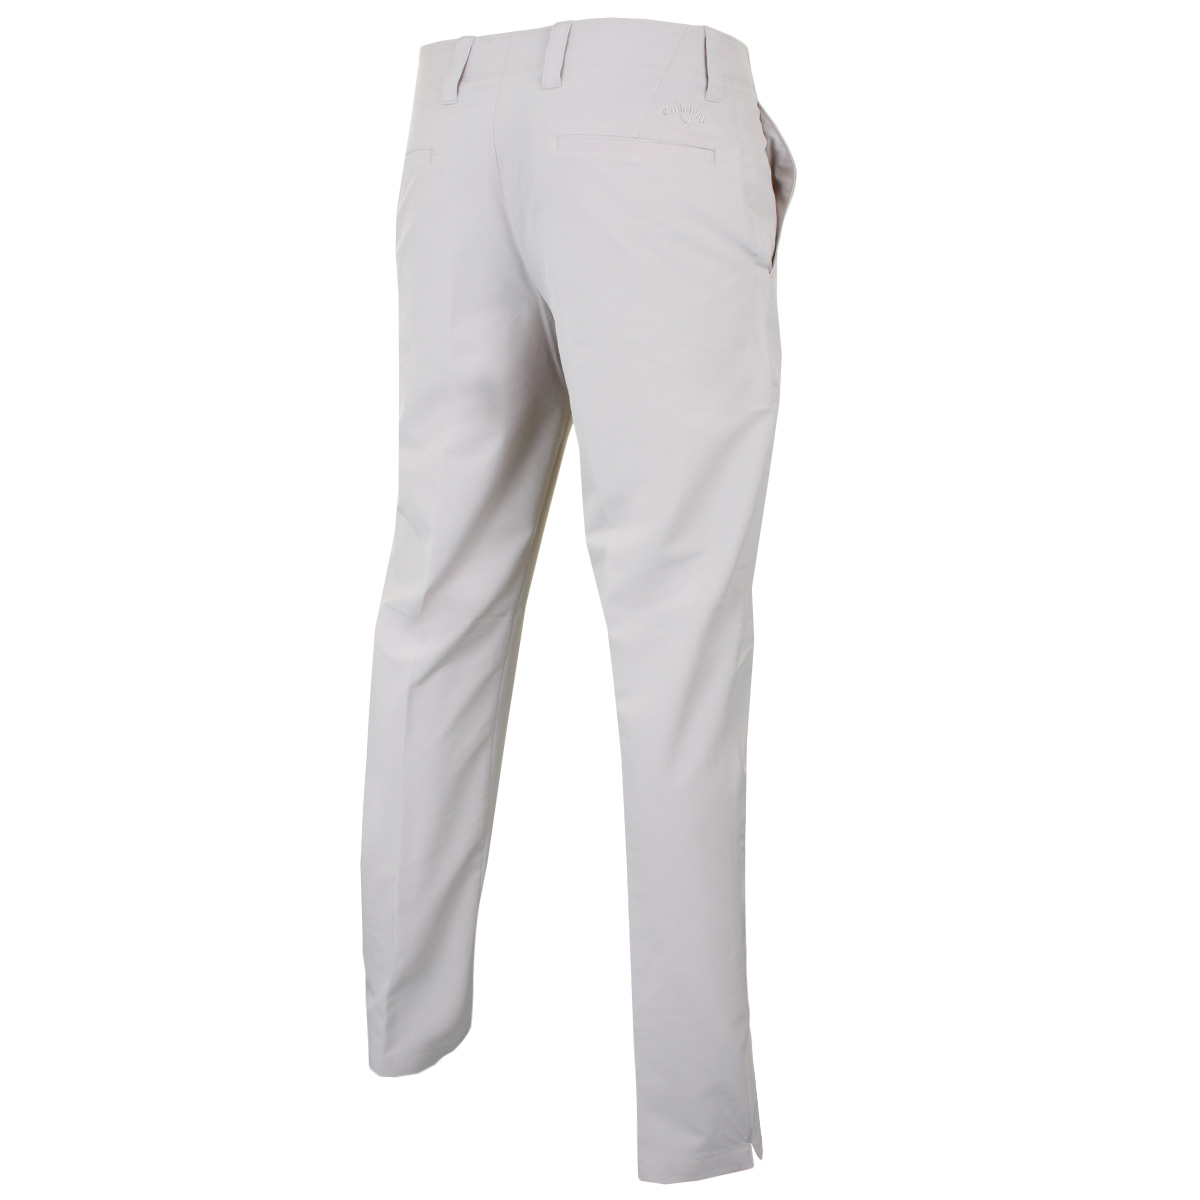 Callaway-Mens-2019-Chev-Tech-II-Lightweight-Stretch-Golf-Trousers-28-OFF-RRP thumbnail 18